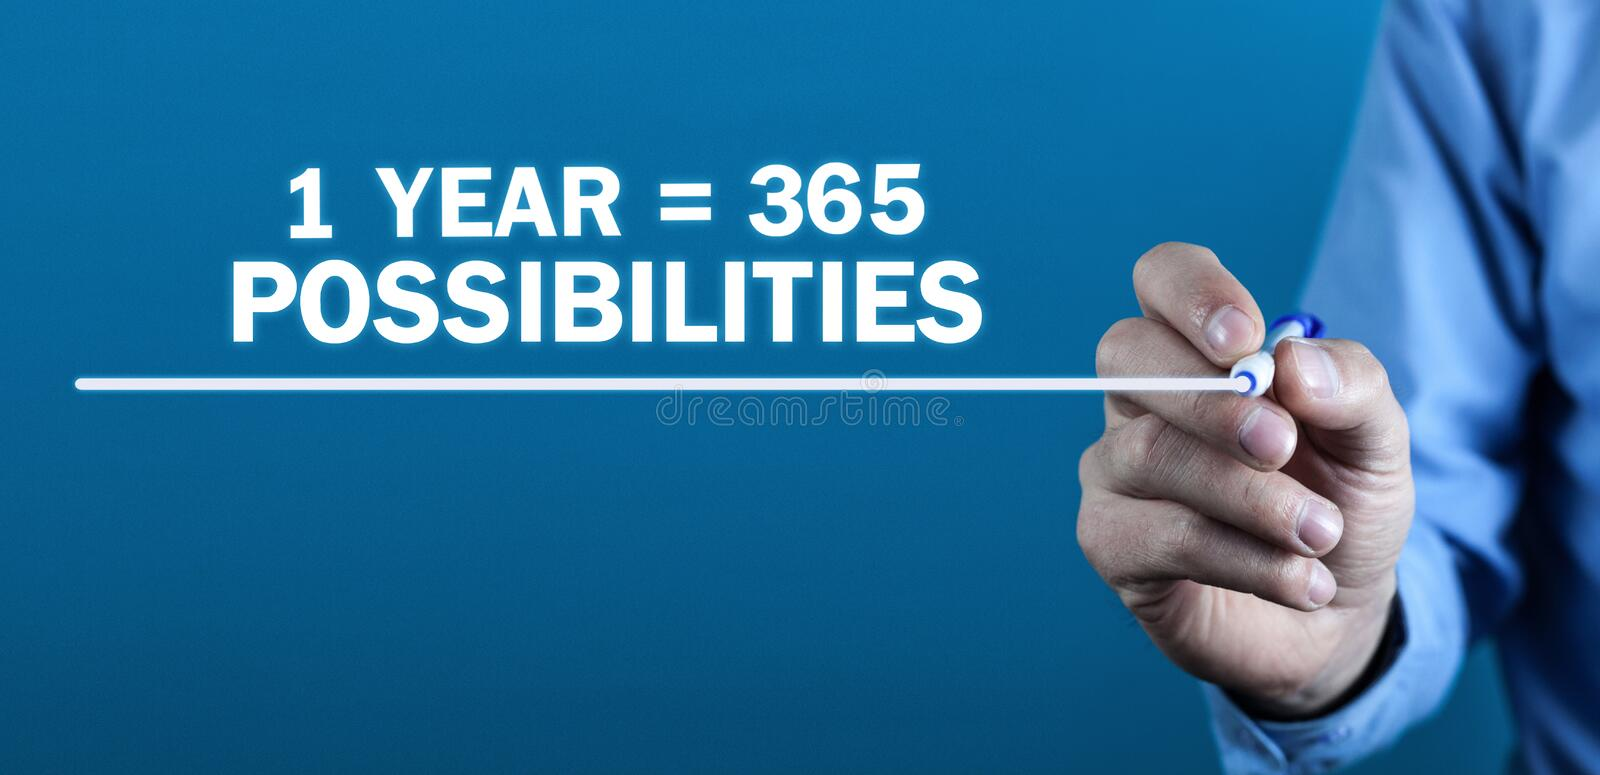 1 year 365 Possibilities. Positive thinking. Business concept royalty free stock image